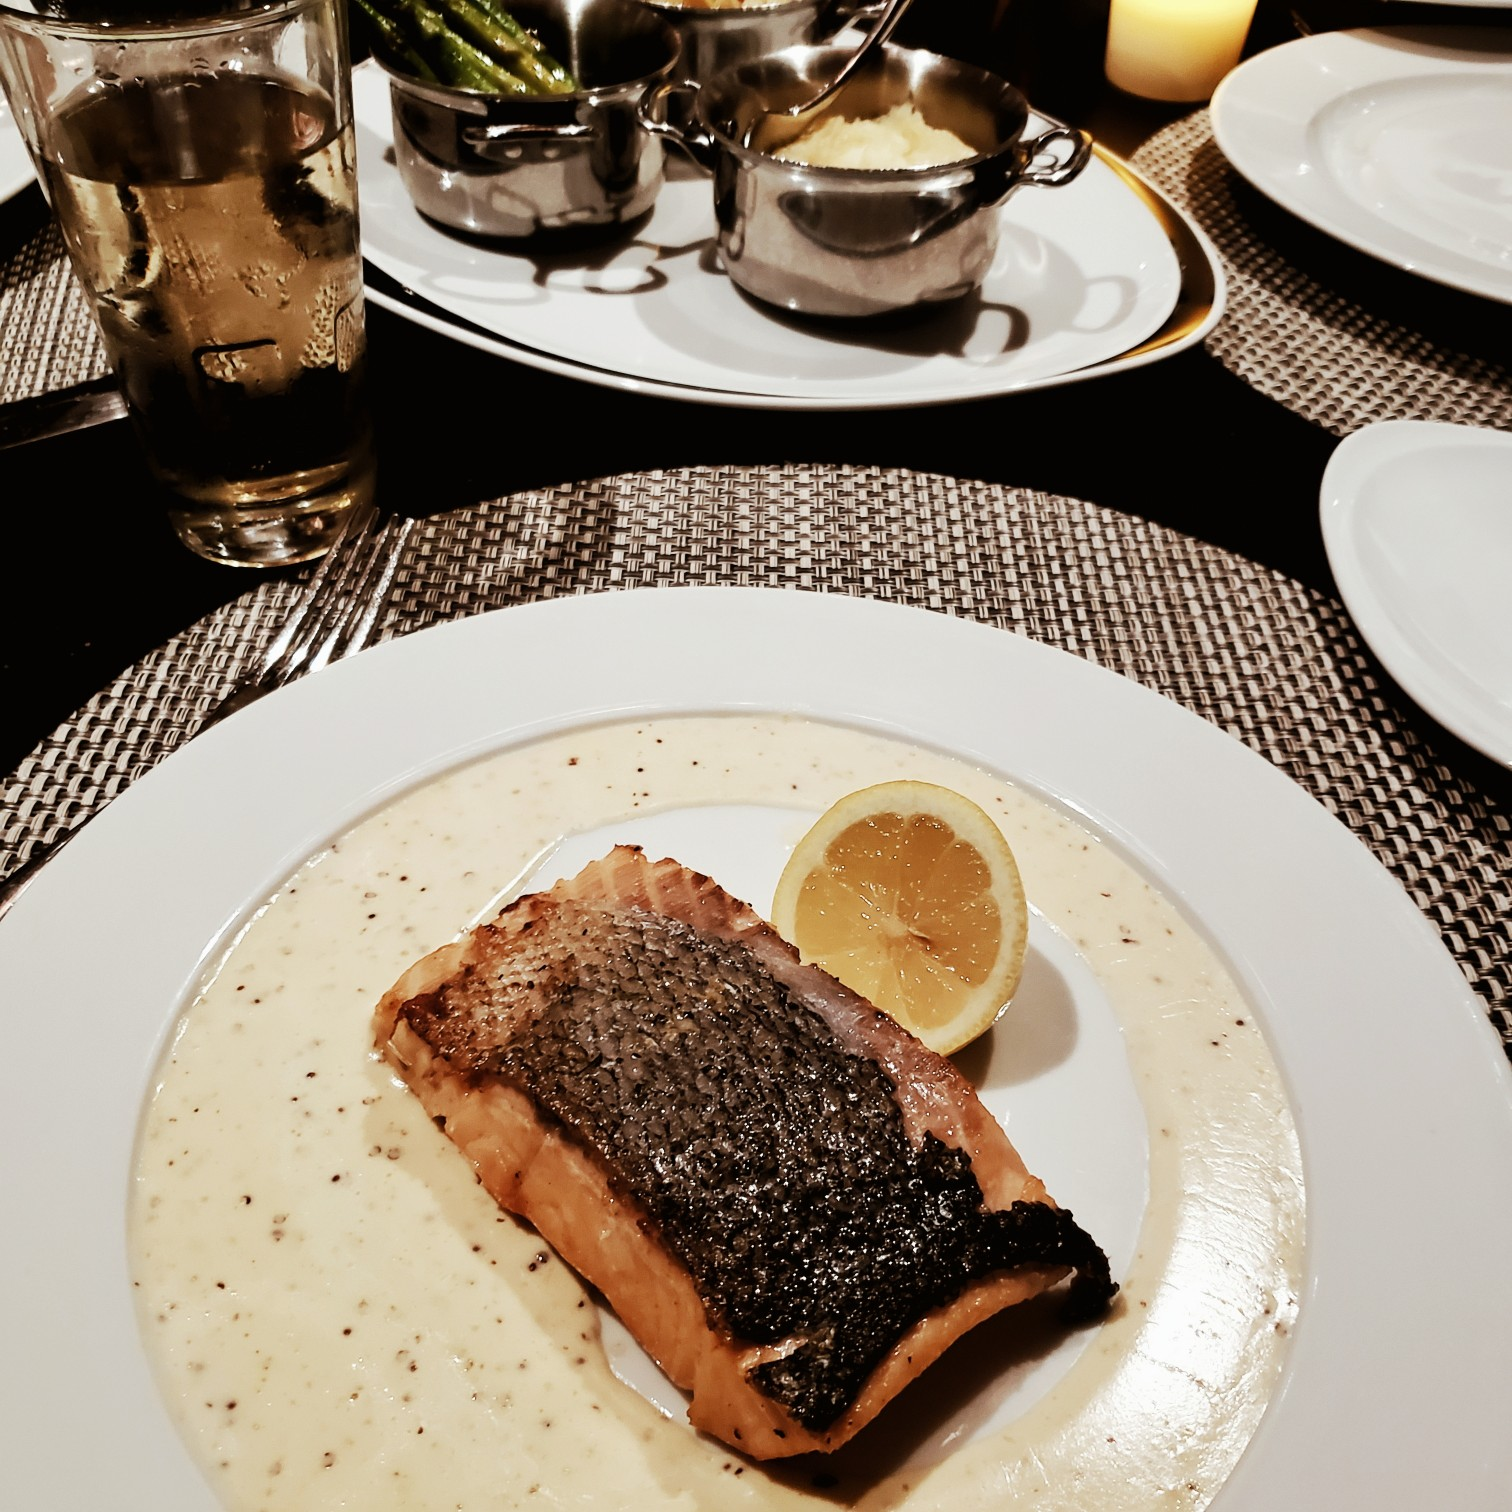 Royal Caribbean Symphony of the Seas Chops Grille Salmon Dinner